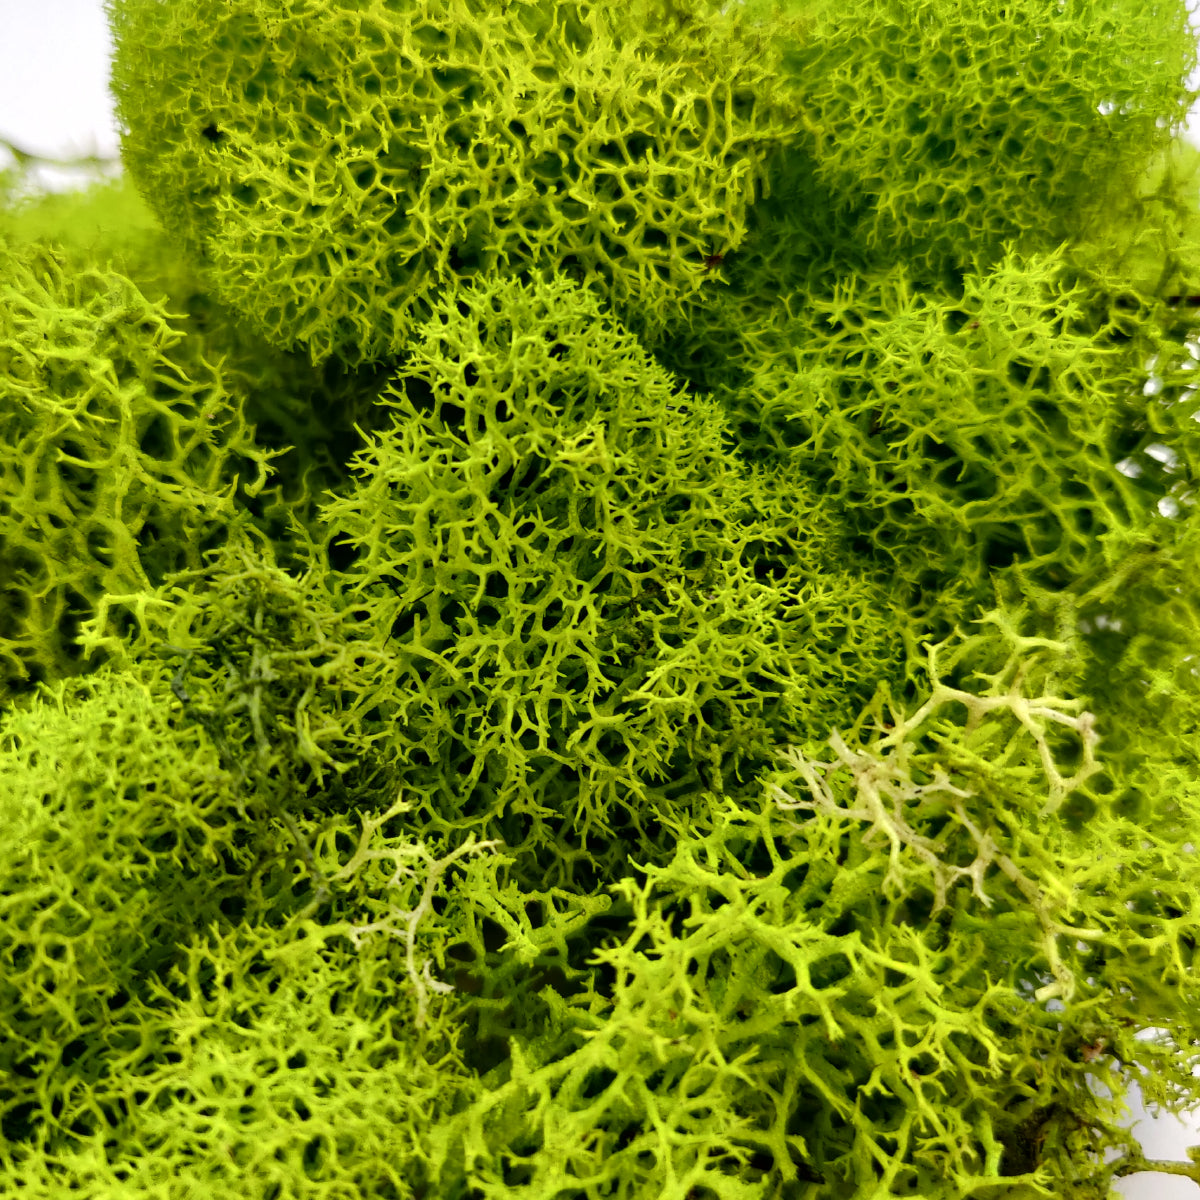 Plus Free Nautical Ebook by Joseph Rains or Any Craft or Floral Project Maroon Moss 4 Ounces Reindeer Moss Preserved Terrariums for Fairy Gardens